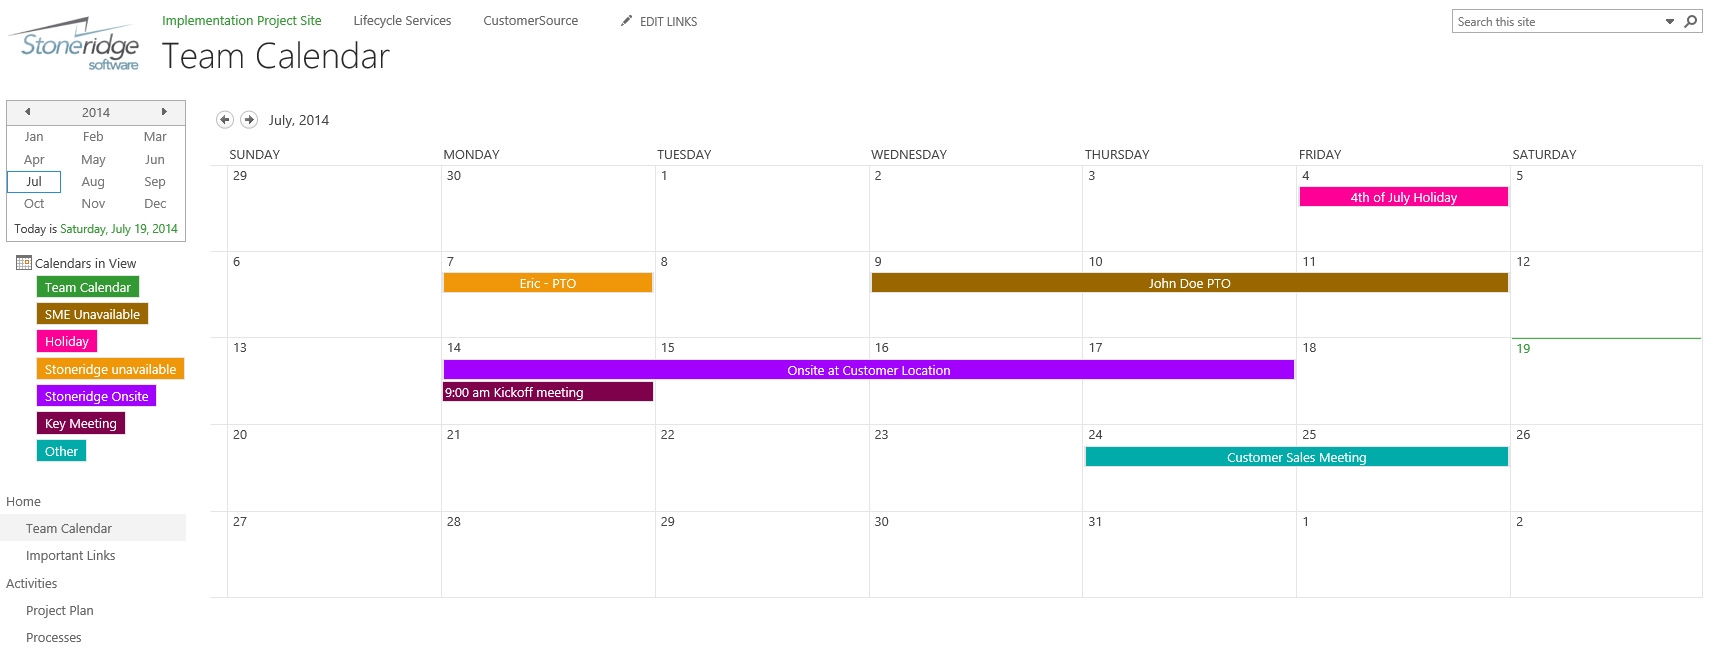 Creating A Color Coded Calendar In Sharepoint Online throughout Calendar Overlay Sharepoint 2013 Duplicates